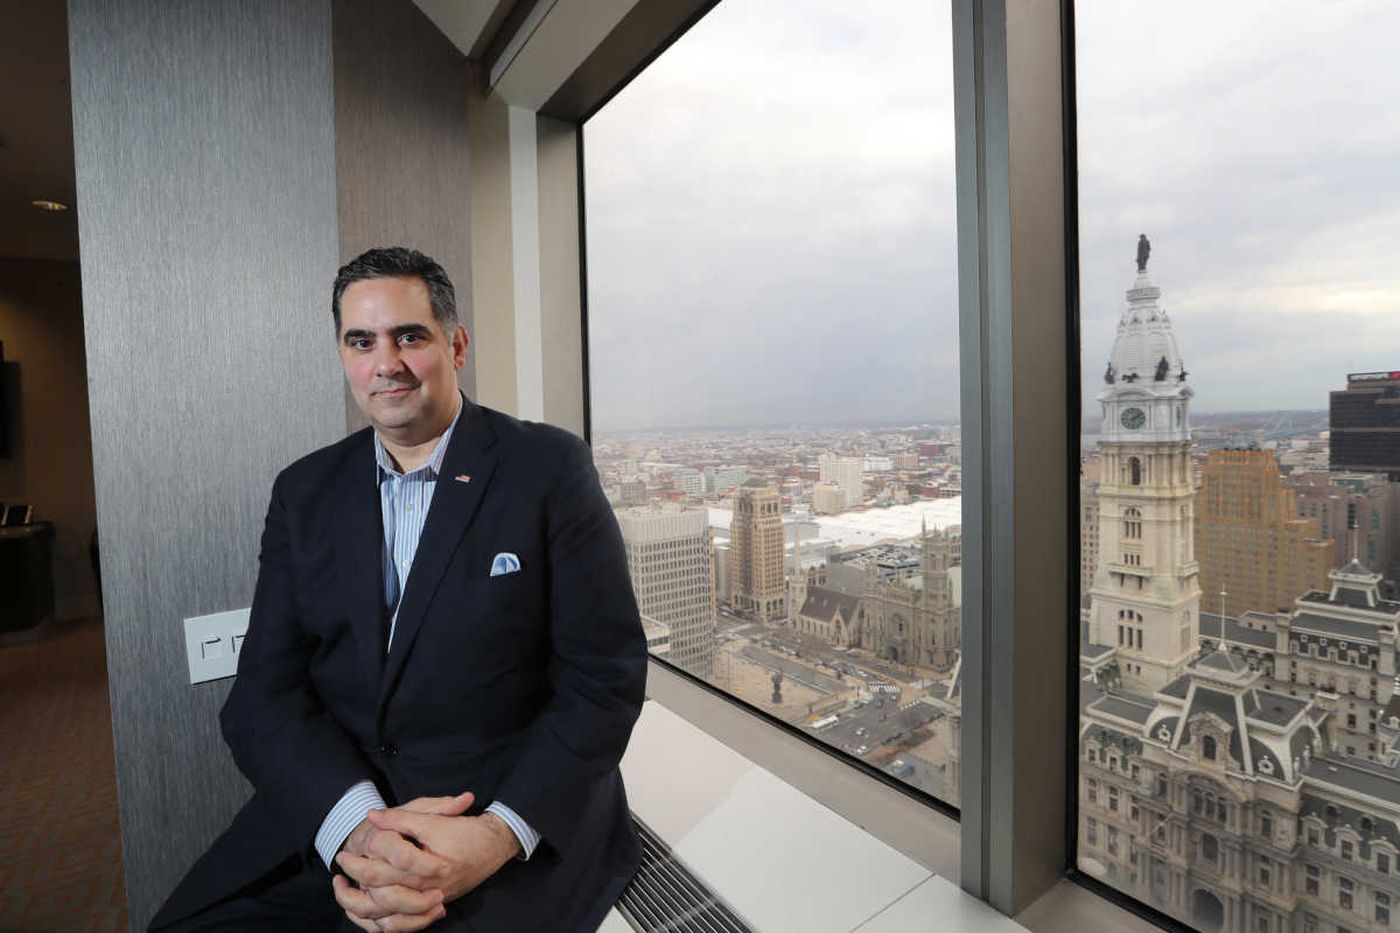 Negrin stands out among Democrats running for DA